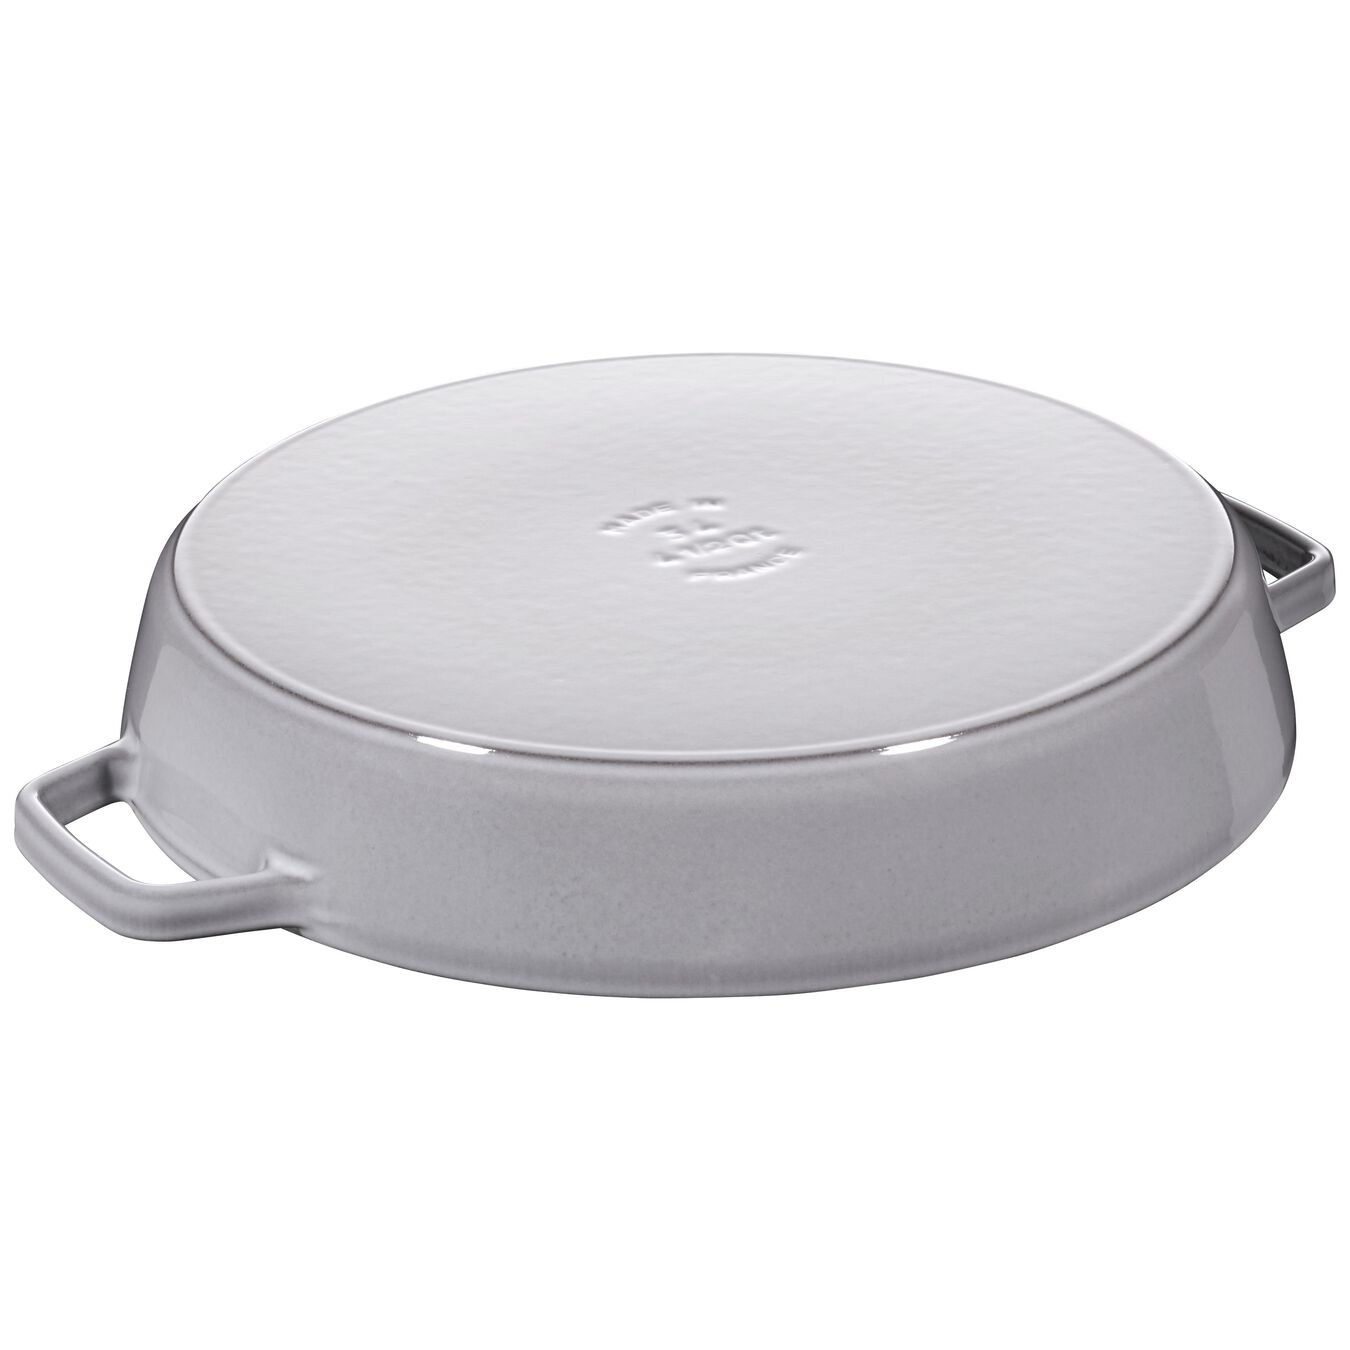 13.5-inch, Paella pan, graphite grey - Visual Imperfections,,large 2